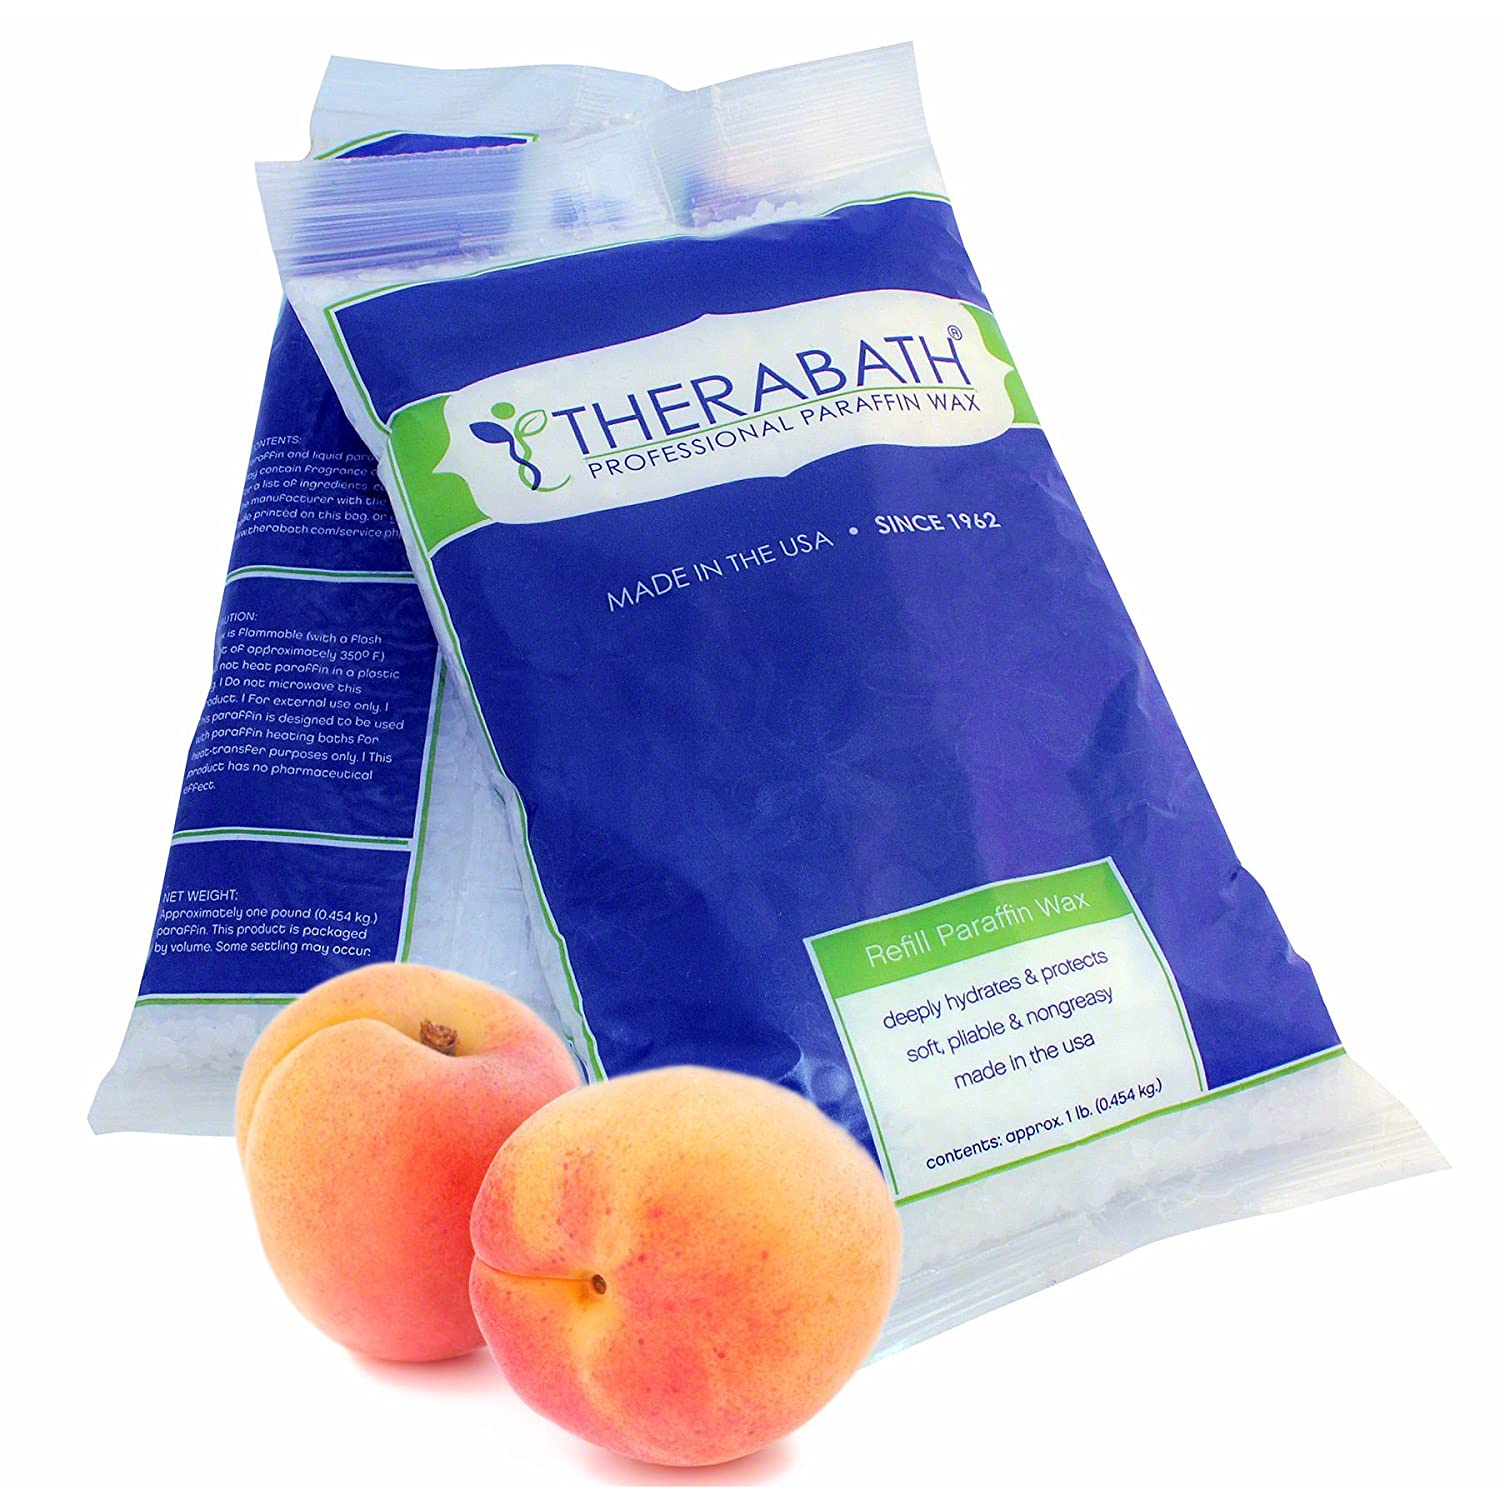 Therabath Paraffin Wax Refill - Use To Relieve Arthritis Pain and Stiff Muscles - Deeply Hydrates and Protects - 6 lbs Cranberry Zest WR Medical No Model